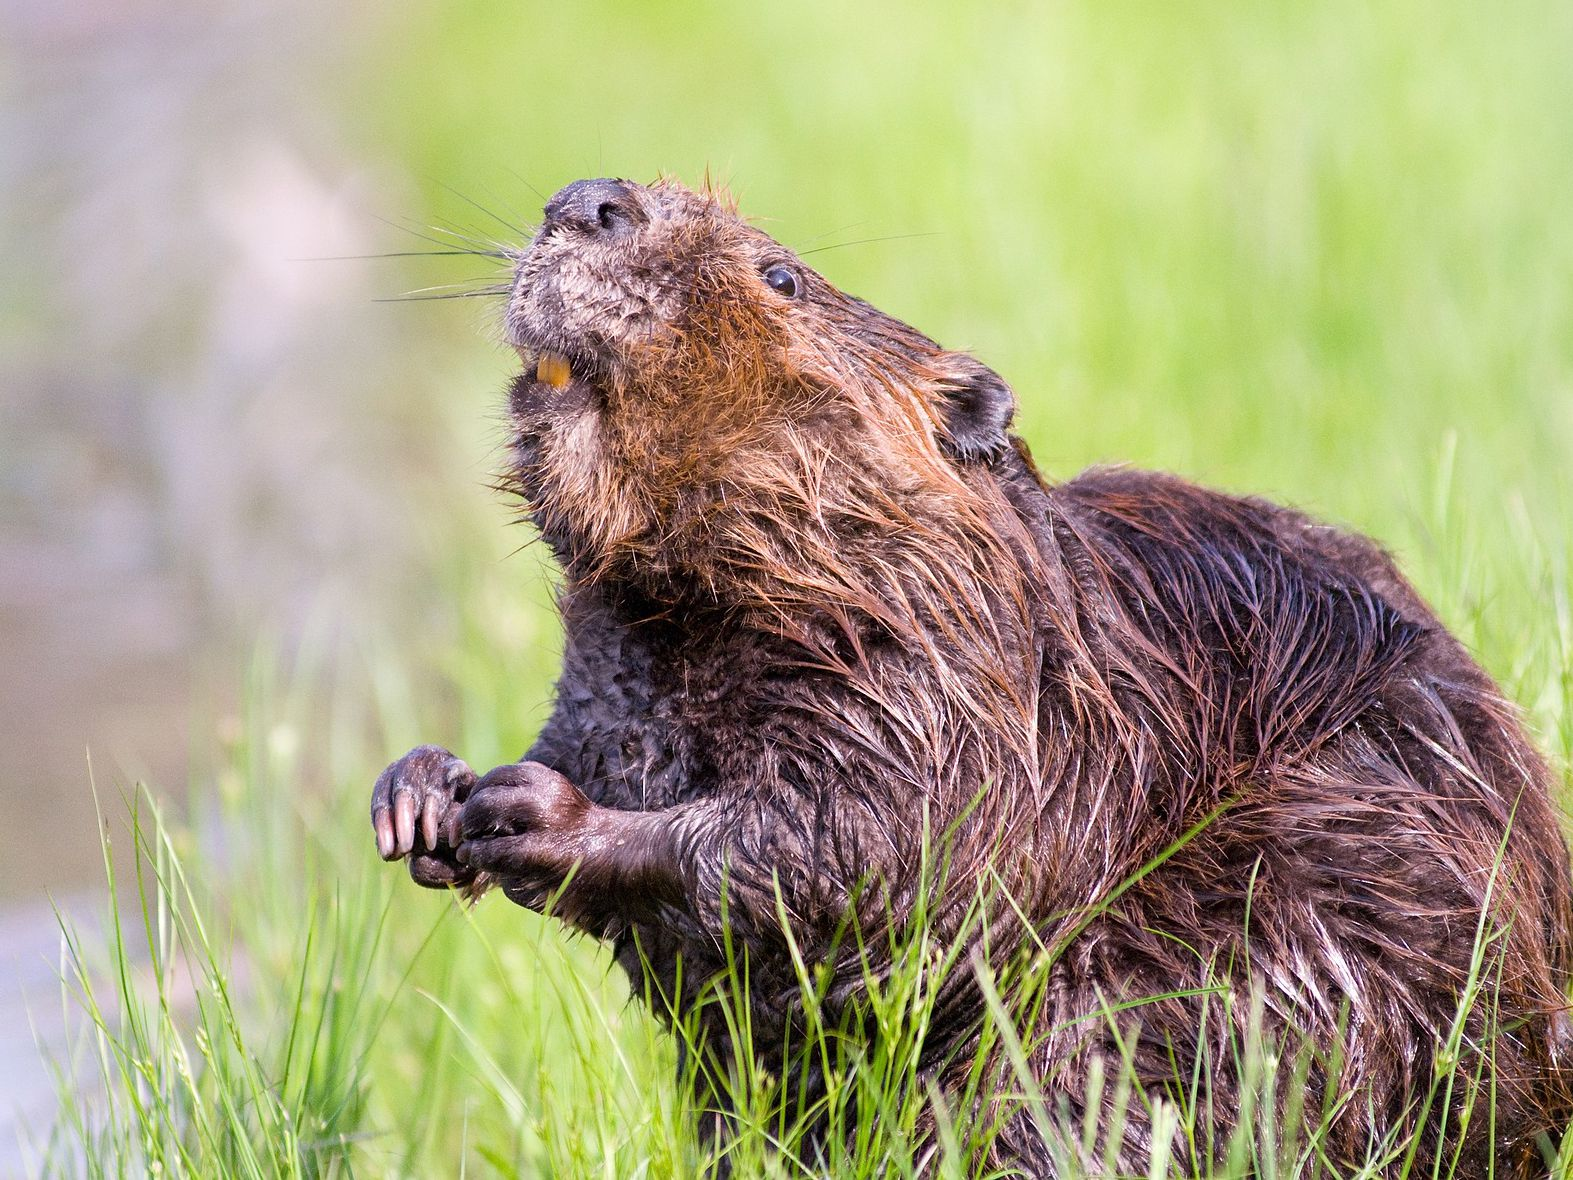 Beaver spotted near DC's Tidal Basin, raising concerns about cherry trees